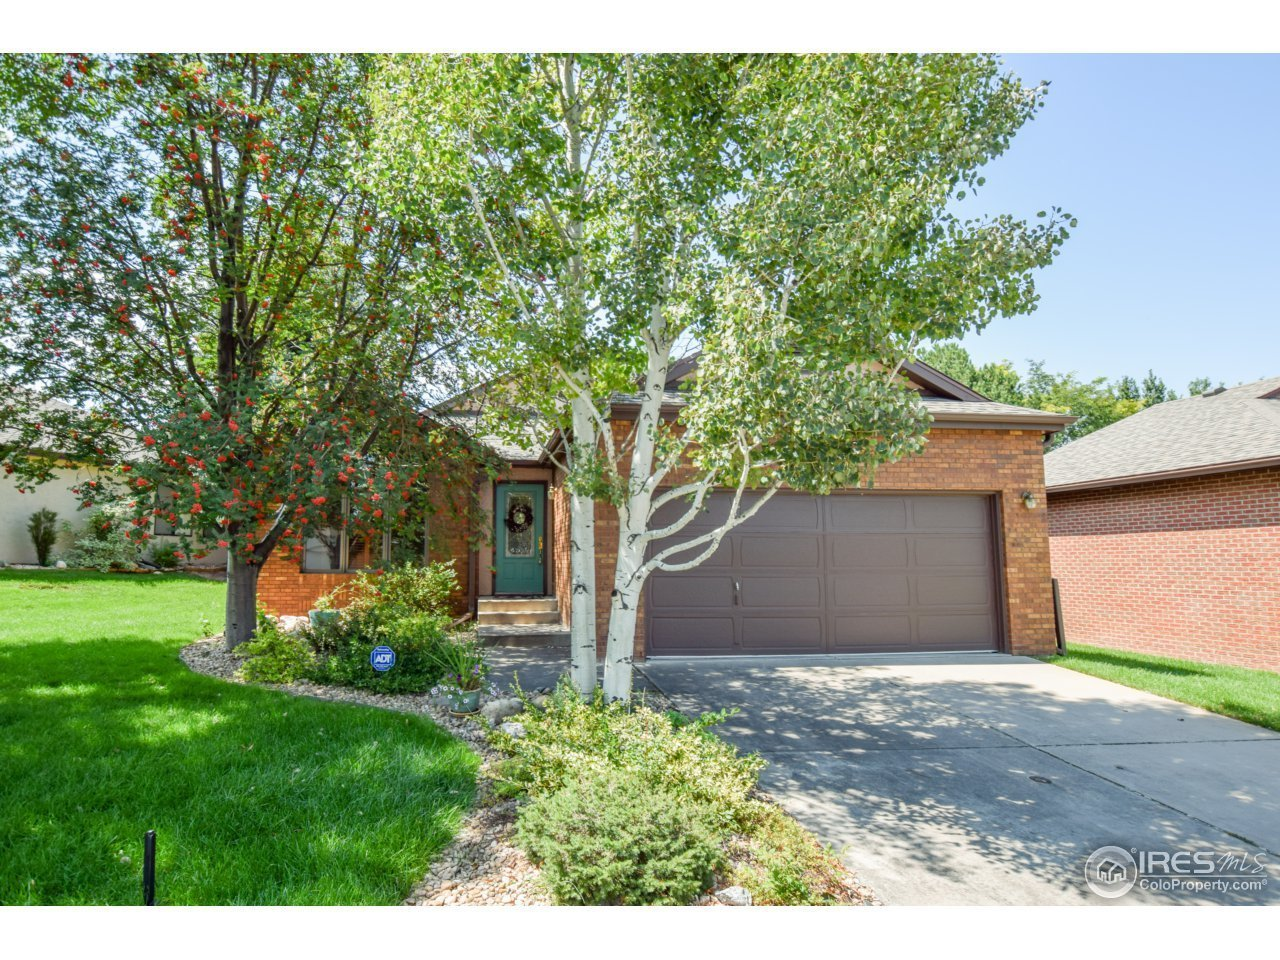 1001 43rd ave #15, greeley, co 80634   mls# 826096   redfin